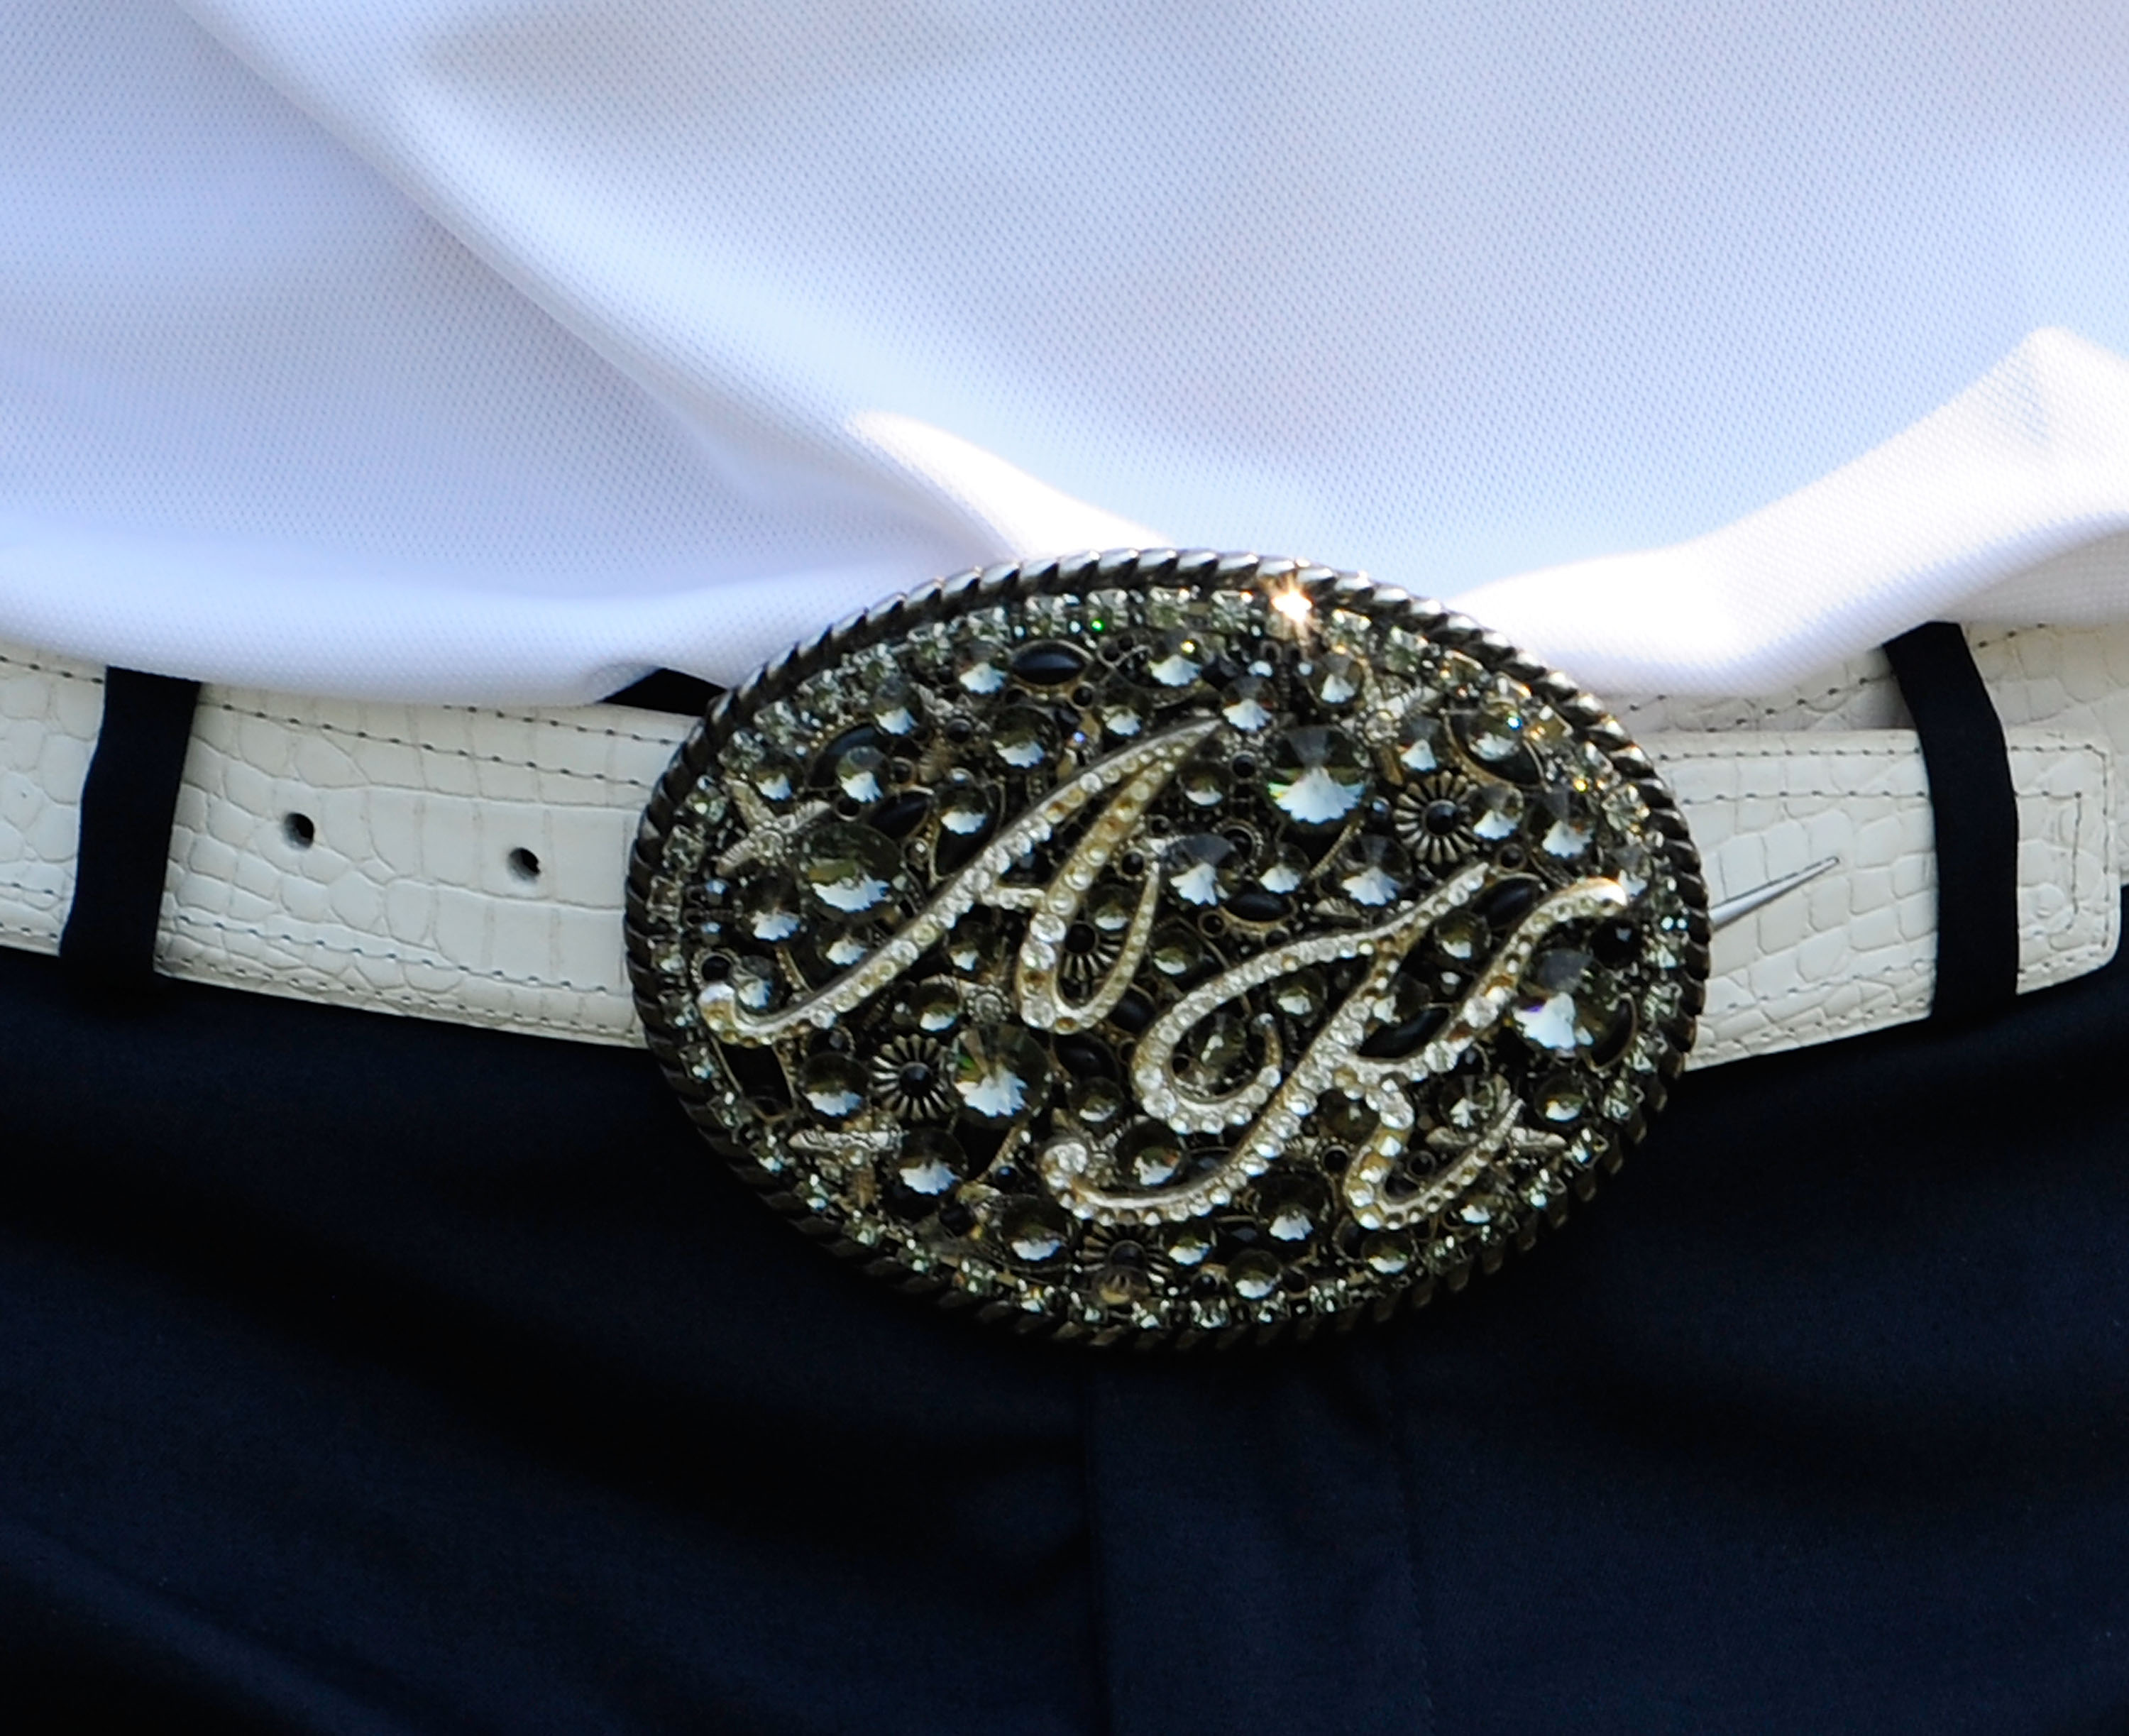 PALM BEACH GARDENS, FL - MARCH 06:  A closeup view of Anthony Kim's belt buckle during the third round of the Honda Classic at PGA National Resort And Spa on March 6, 2010 in Palm Beach Gardens, Florida.  (Photo by Sam Greenwood/Getty Images)